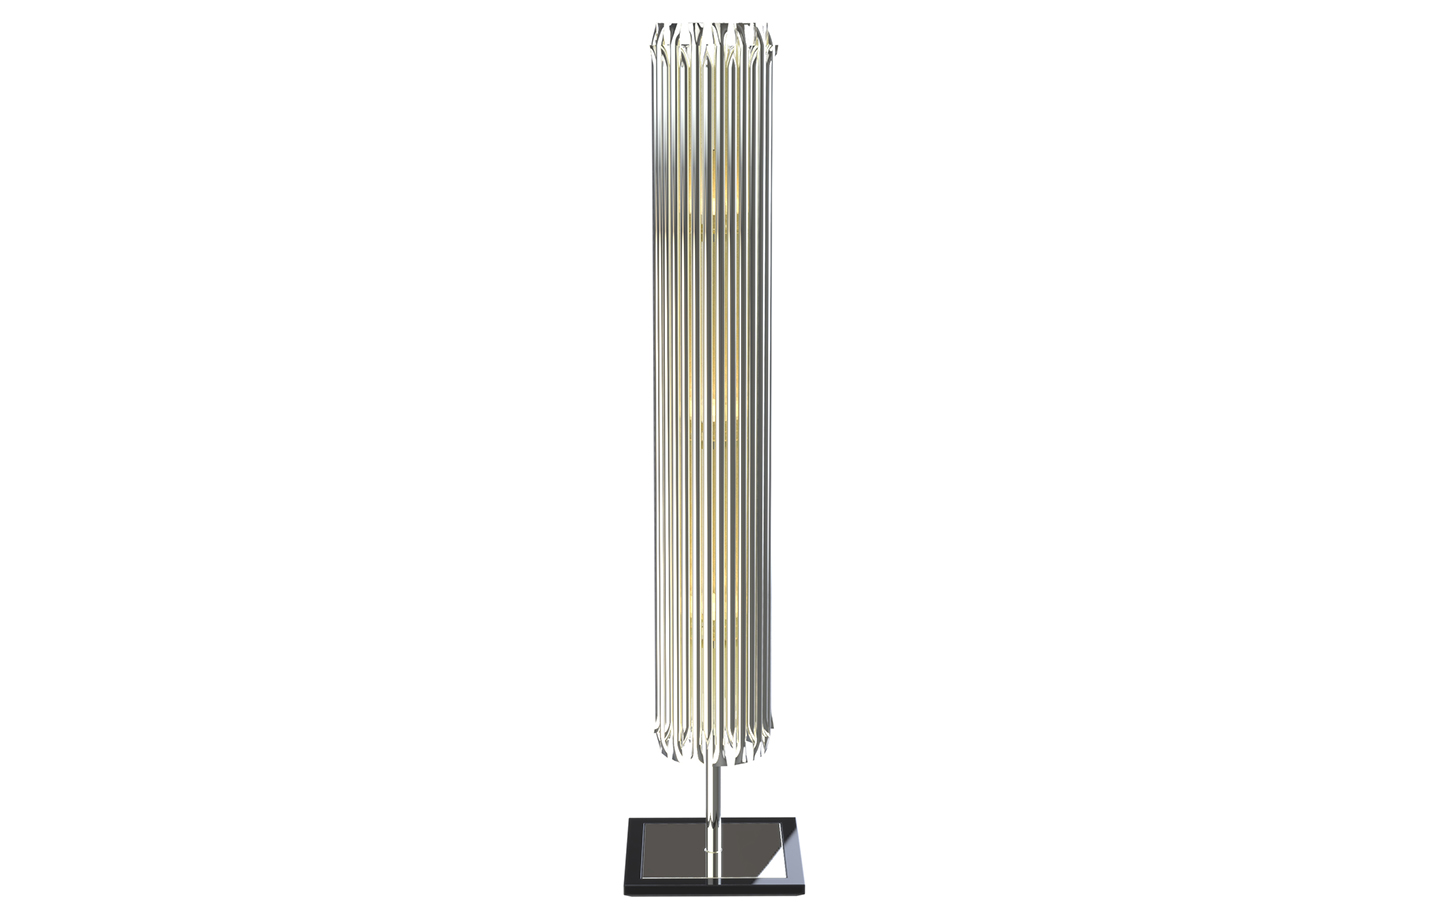 floor samples floor samples Floor Lamps For Luxurious Bathrooms By Floor Samples! Matheny floor lamp nickel